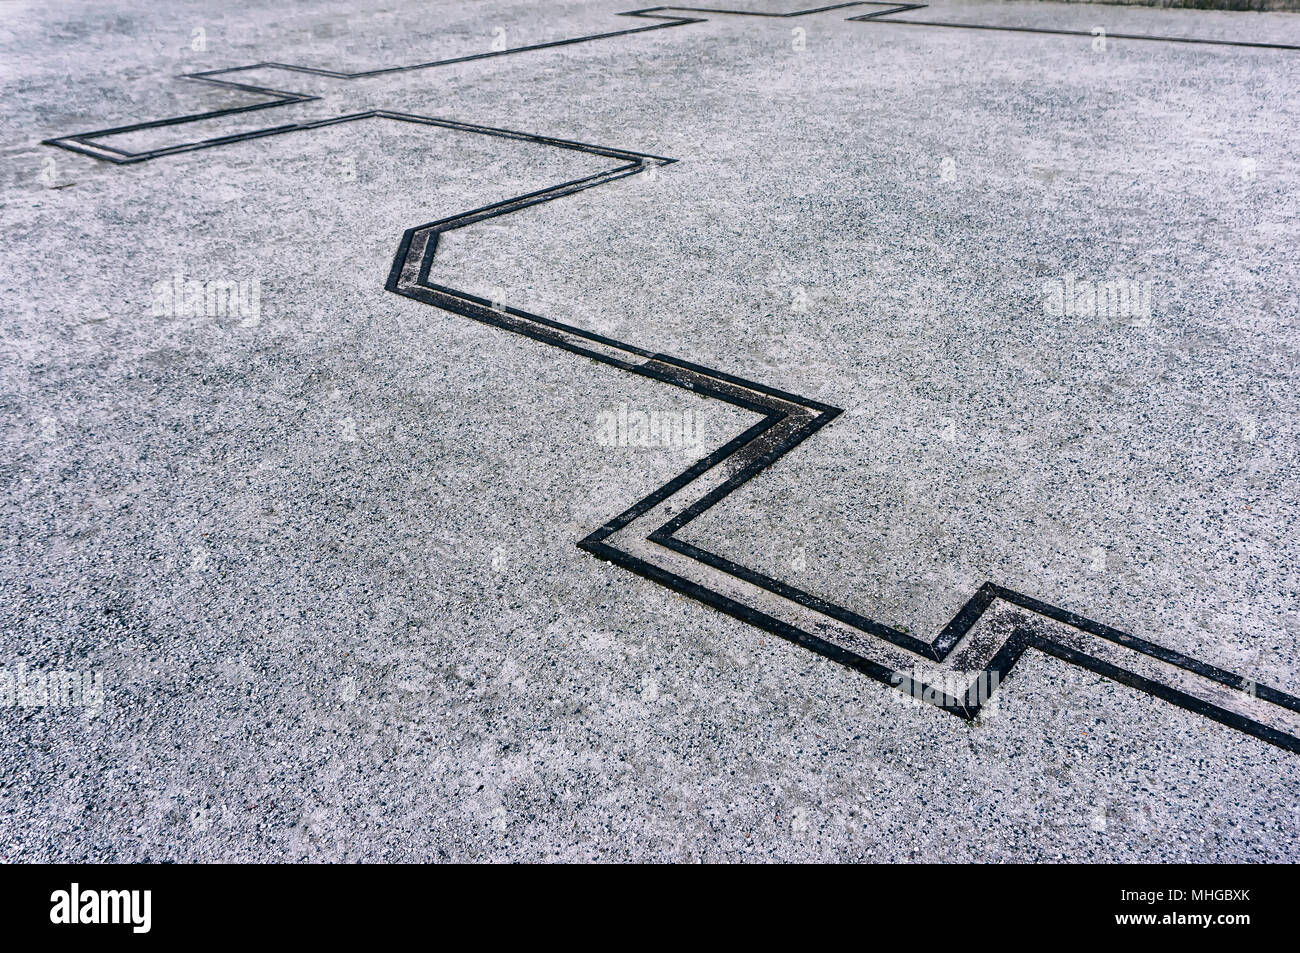 Metal in-ground installation at Berlin Wall Memorial - Stock Image